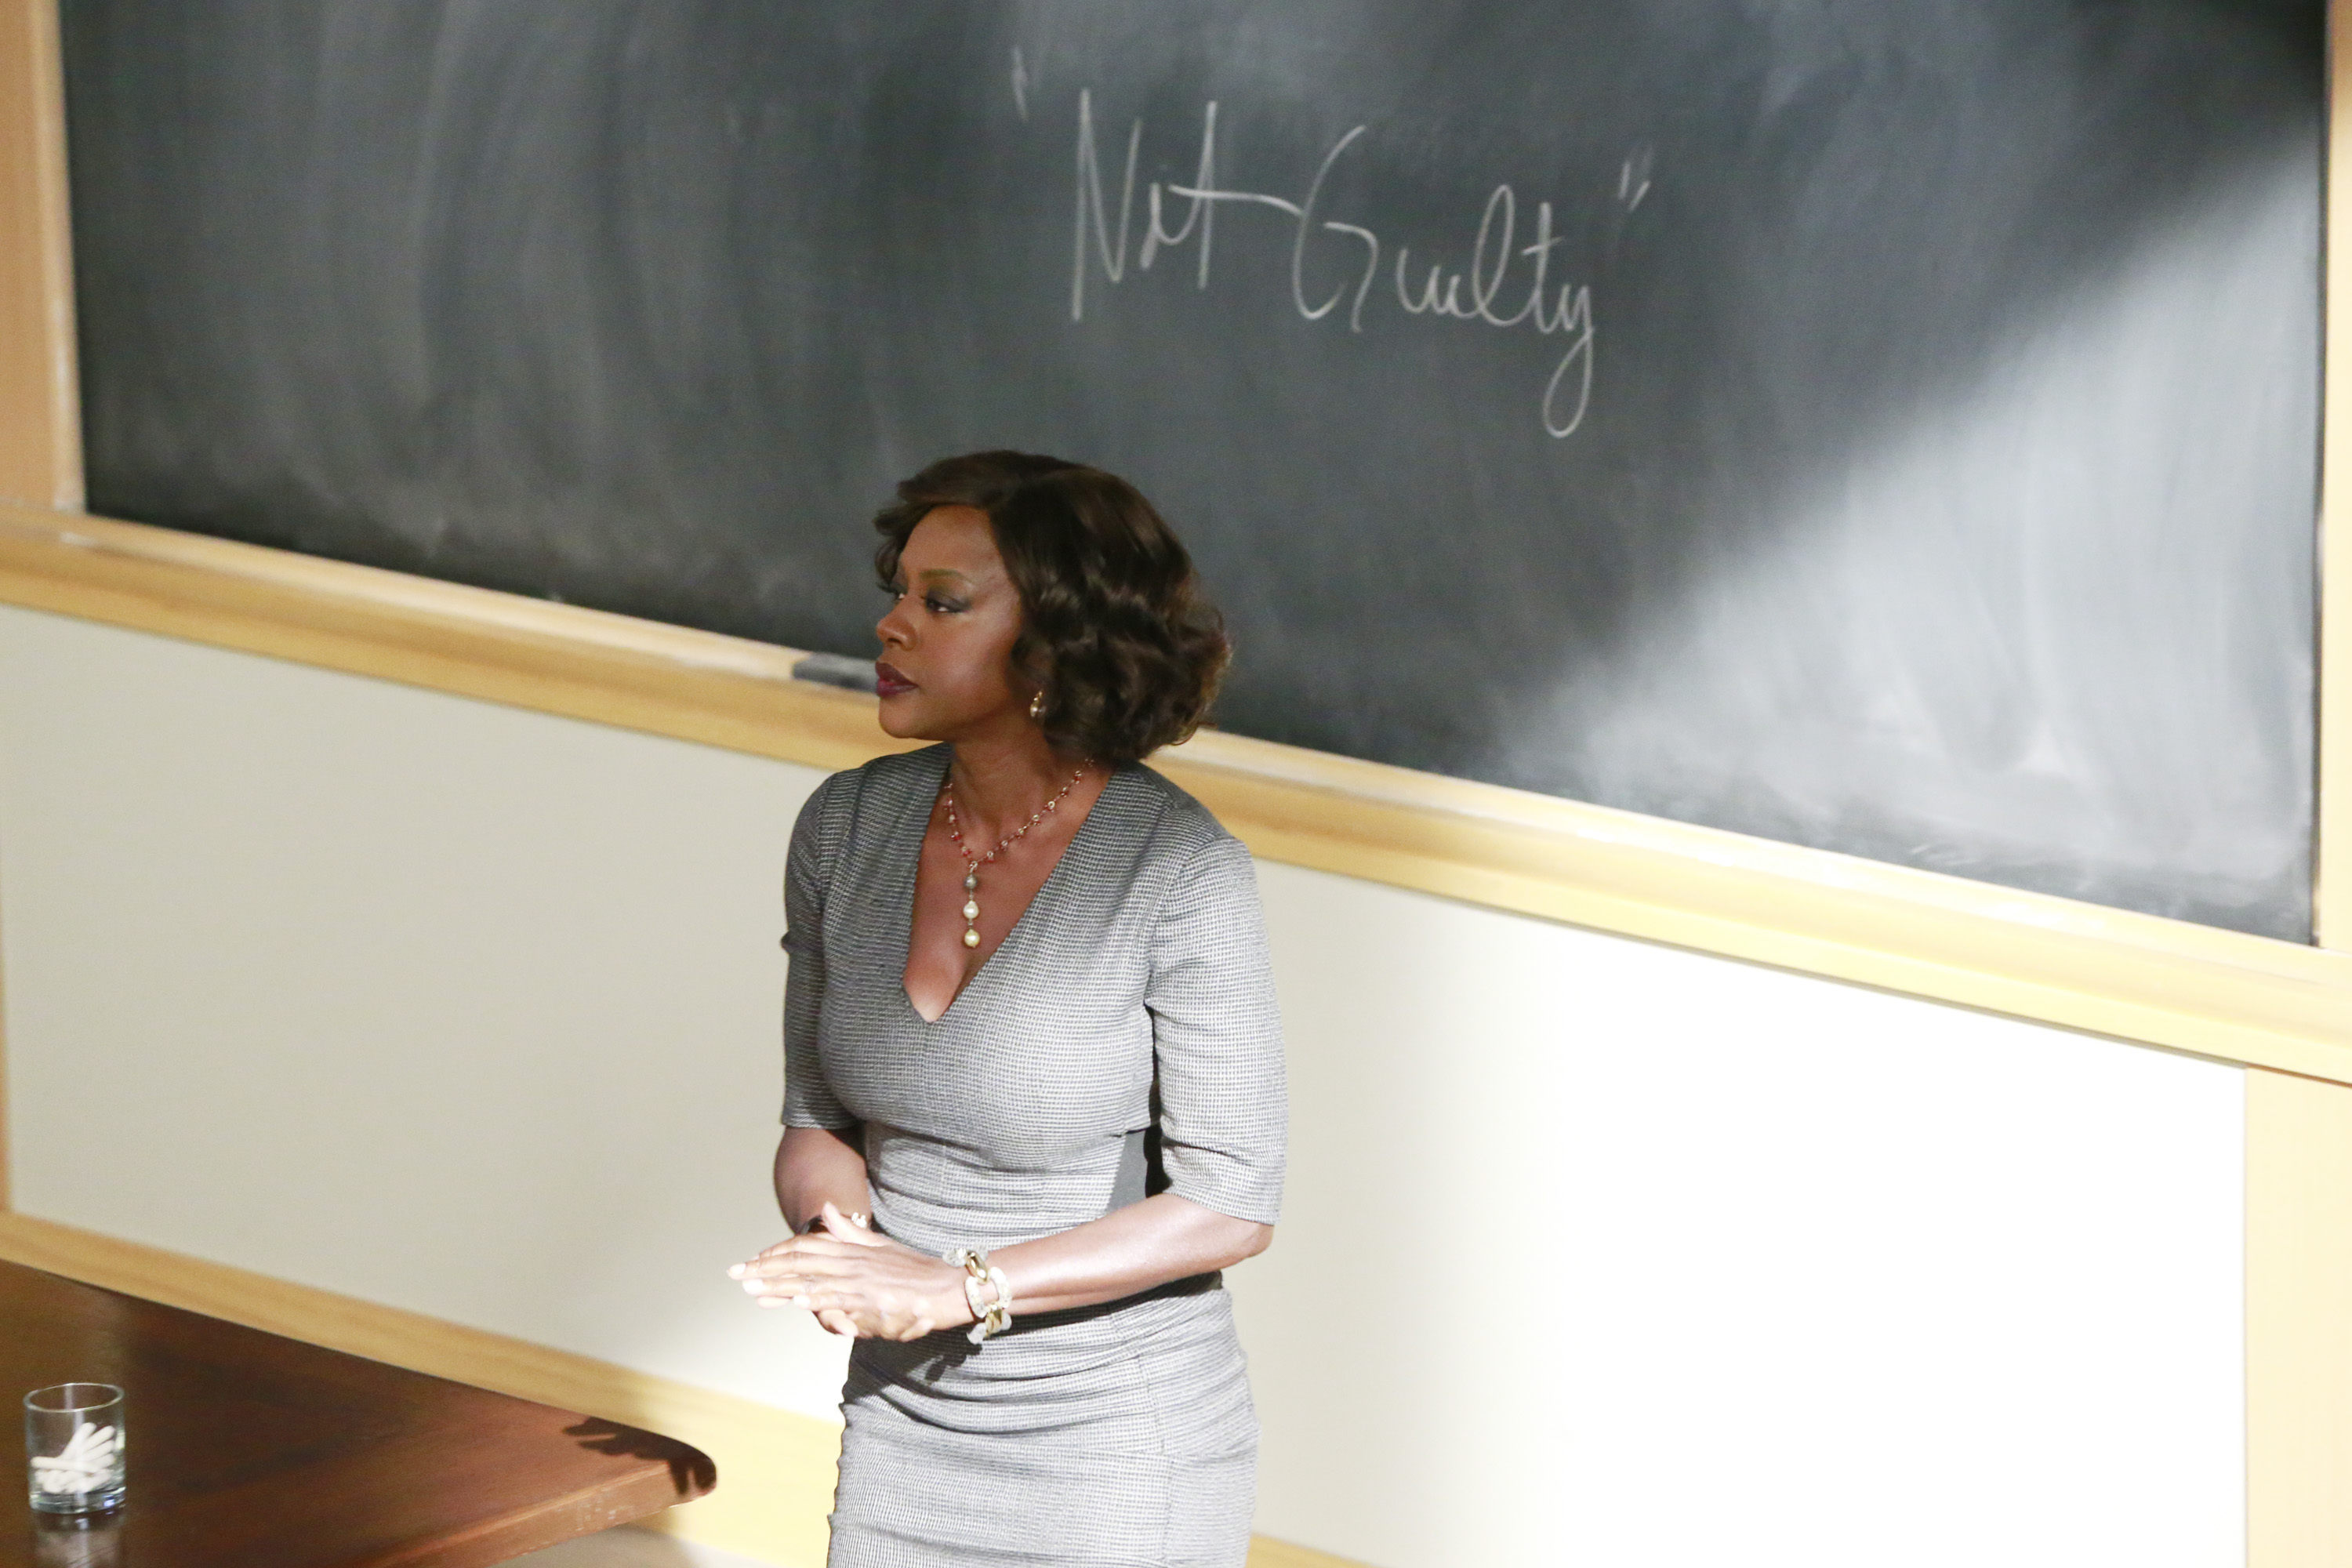 Teachers-How to Get Away With Murder